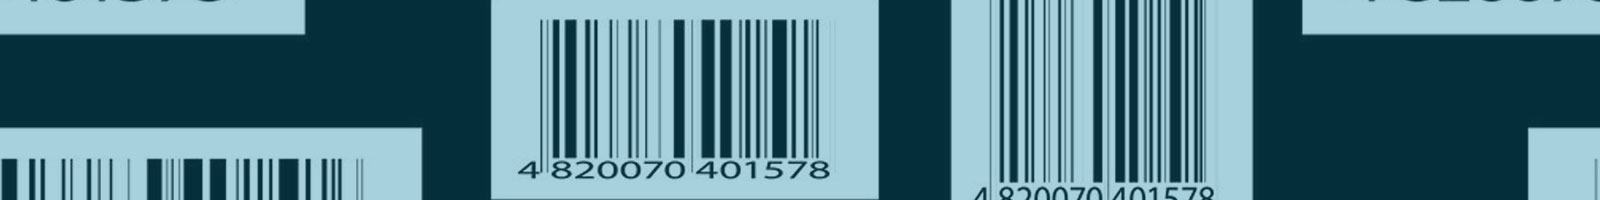 barcode_based